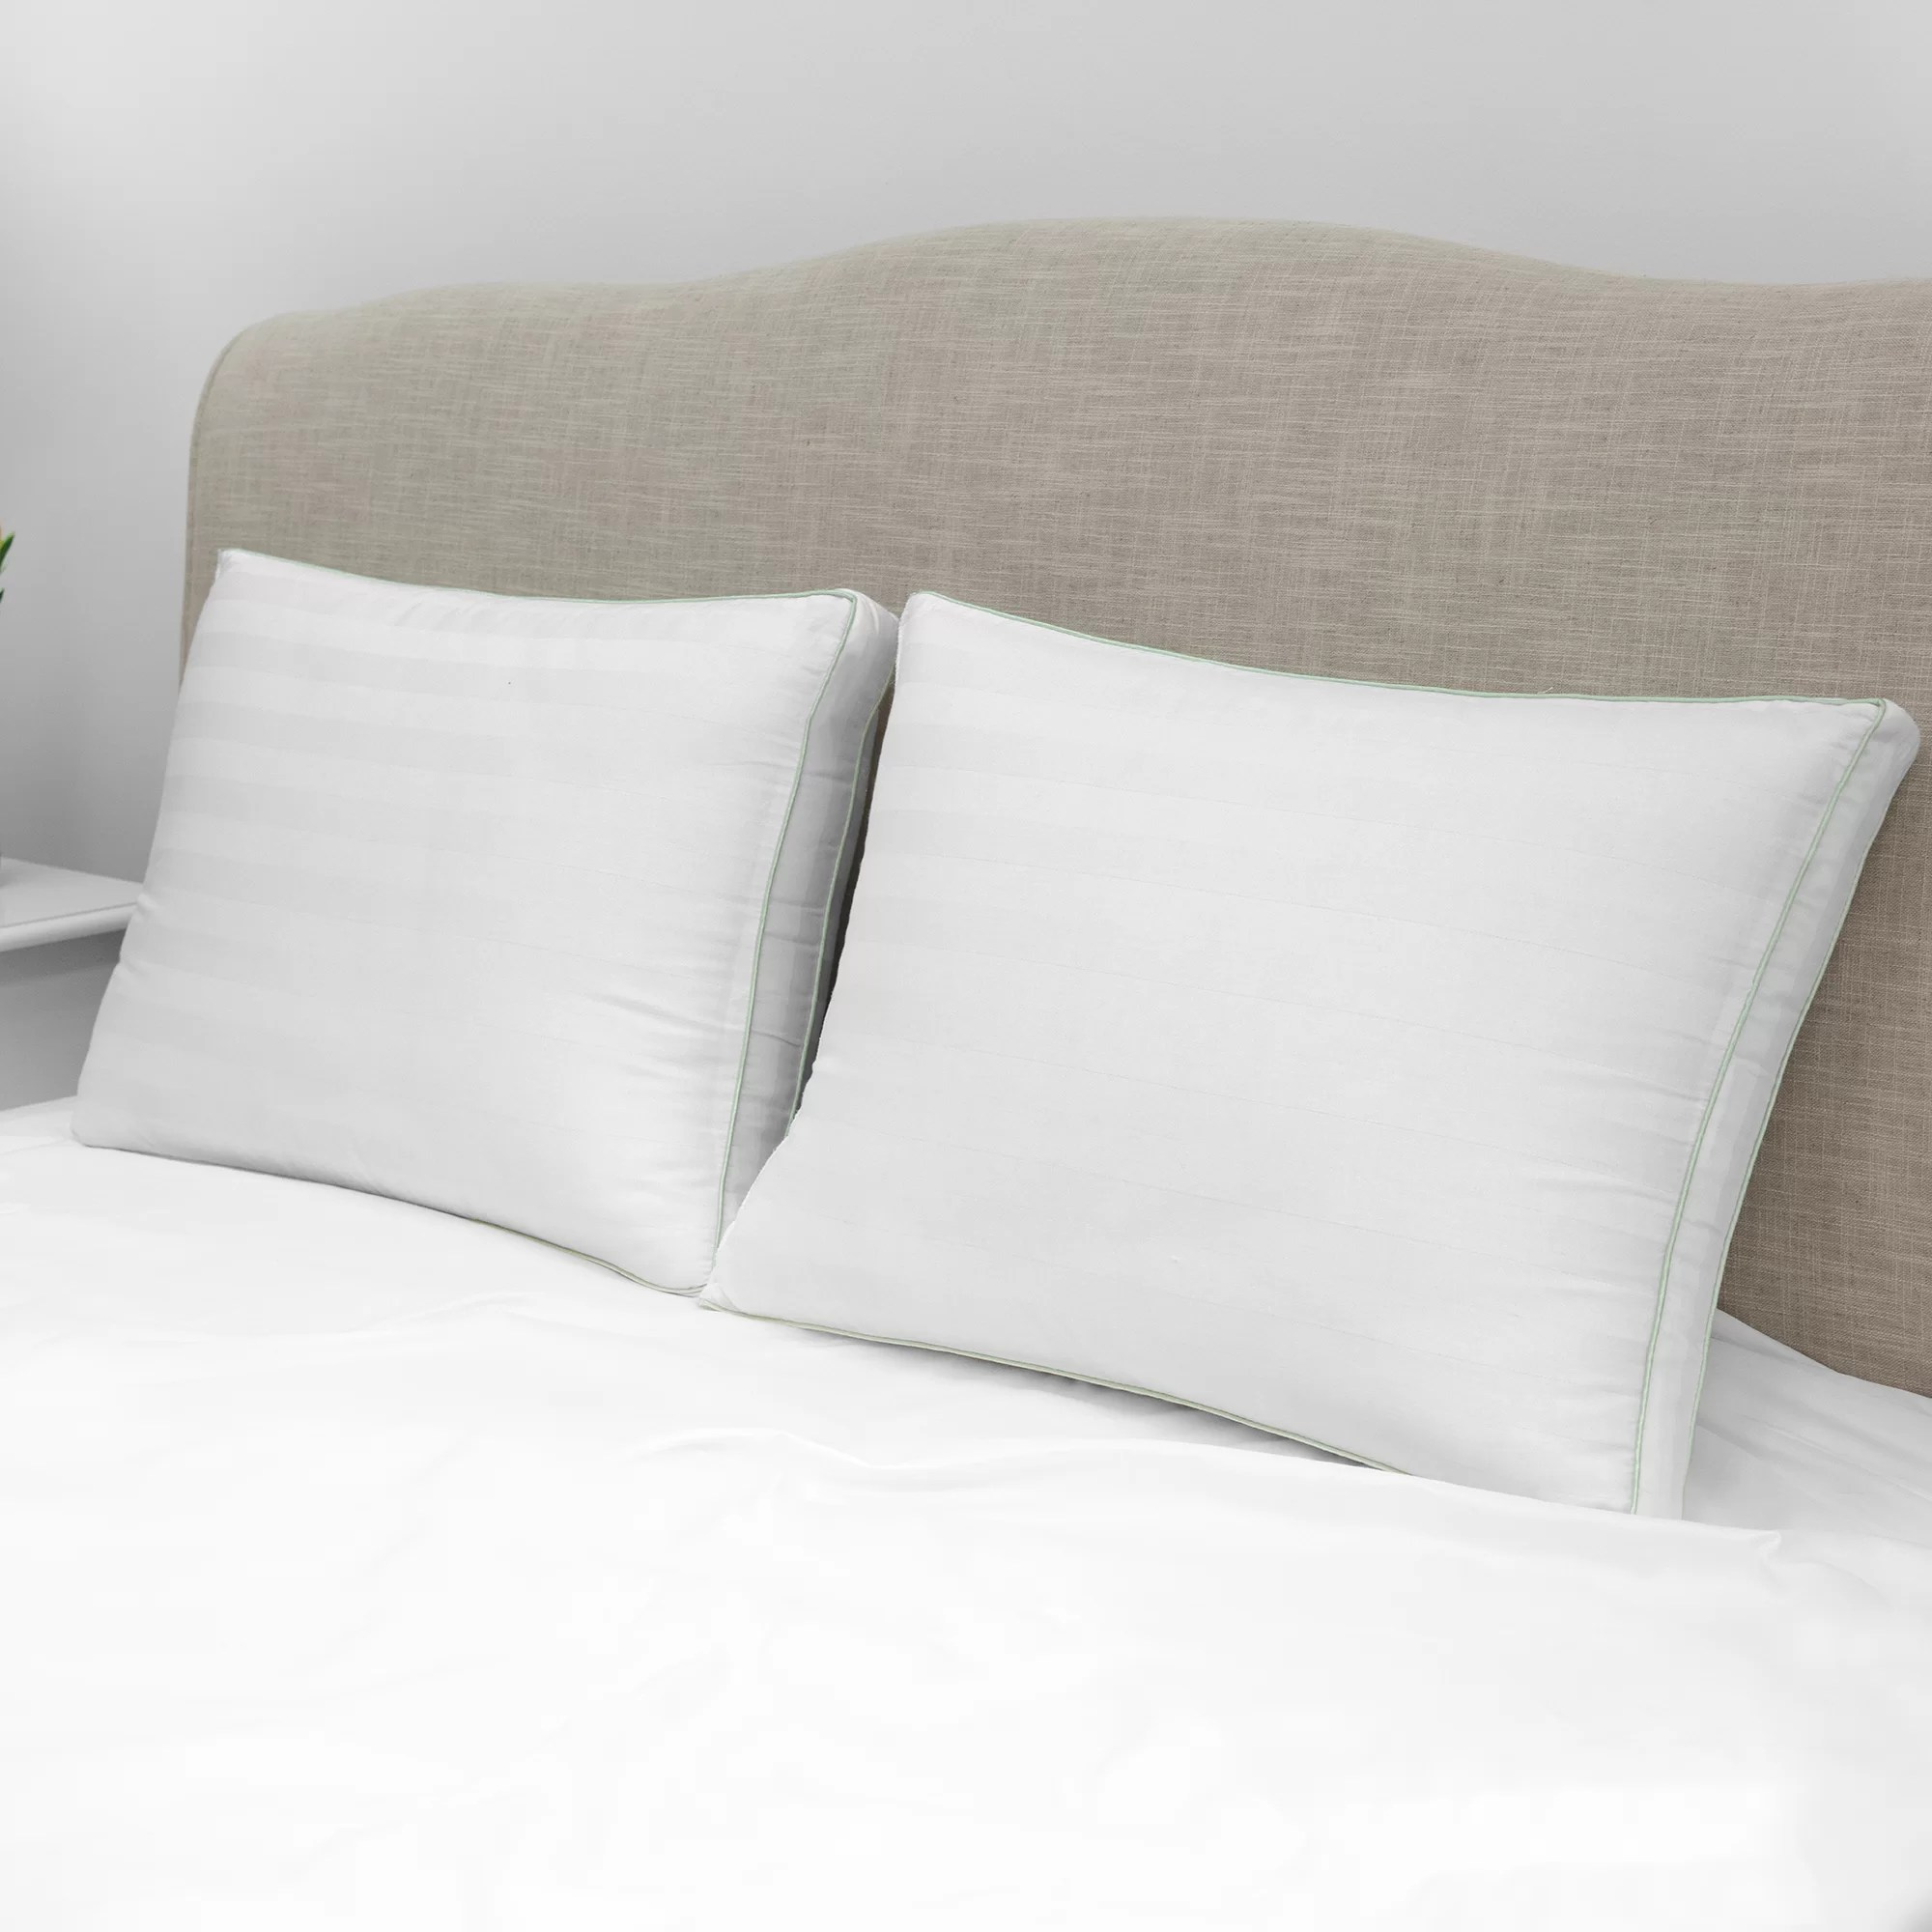 Standard Bed Pillows Sexton Plush Gusseted Medium Standard Bed Pillow